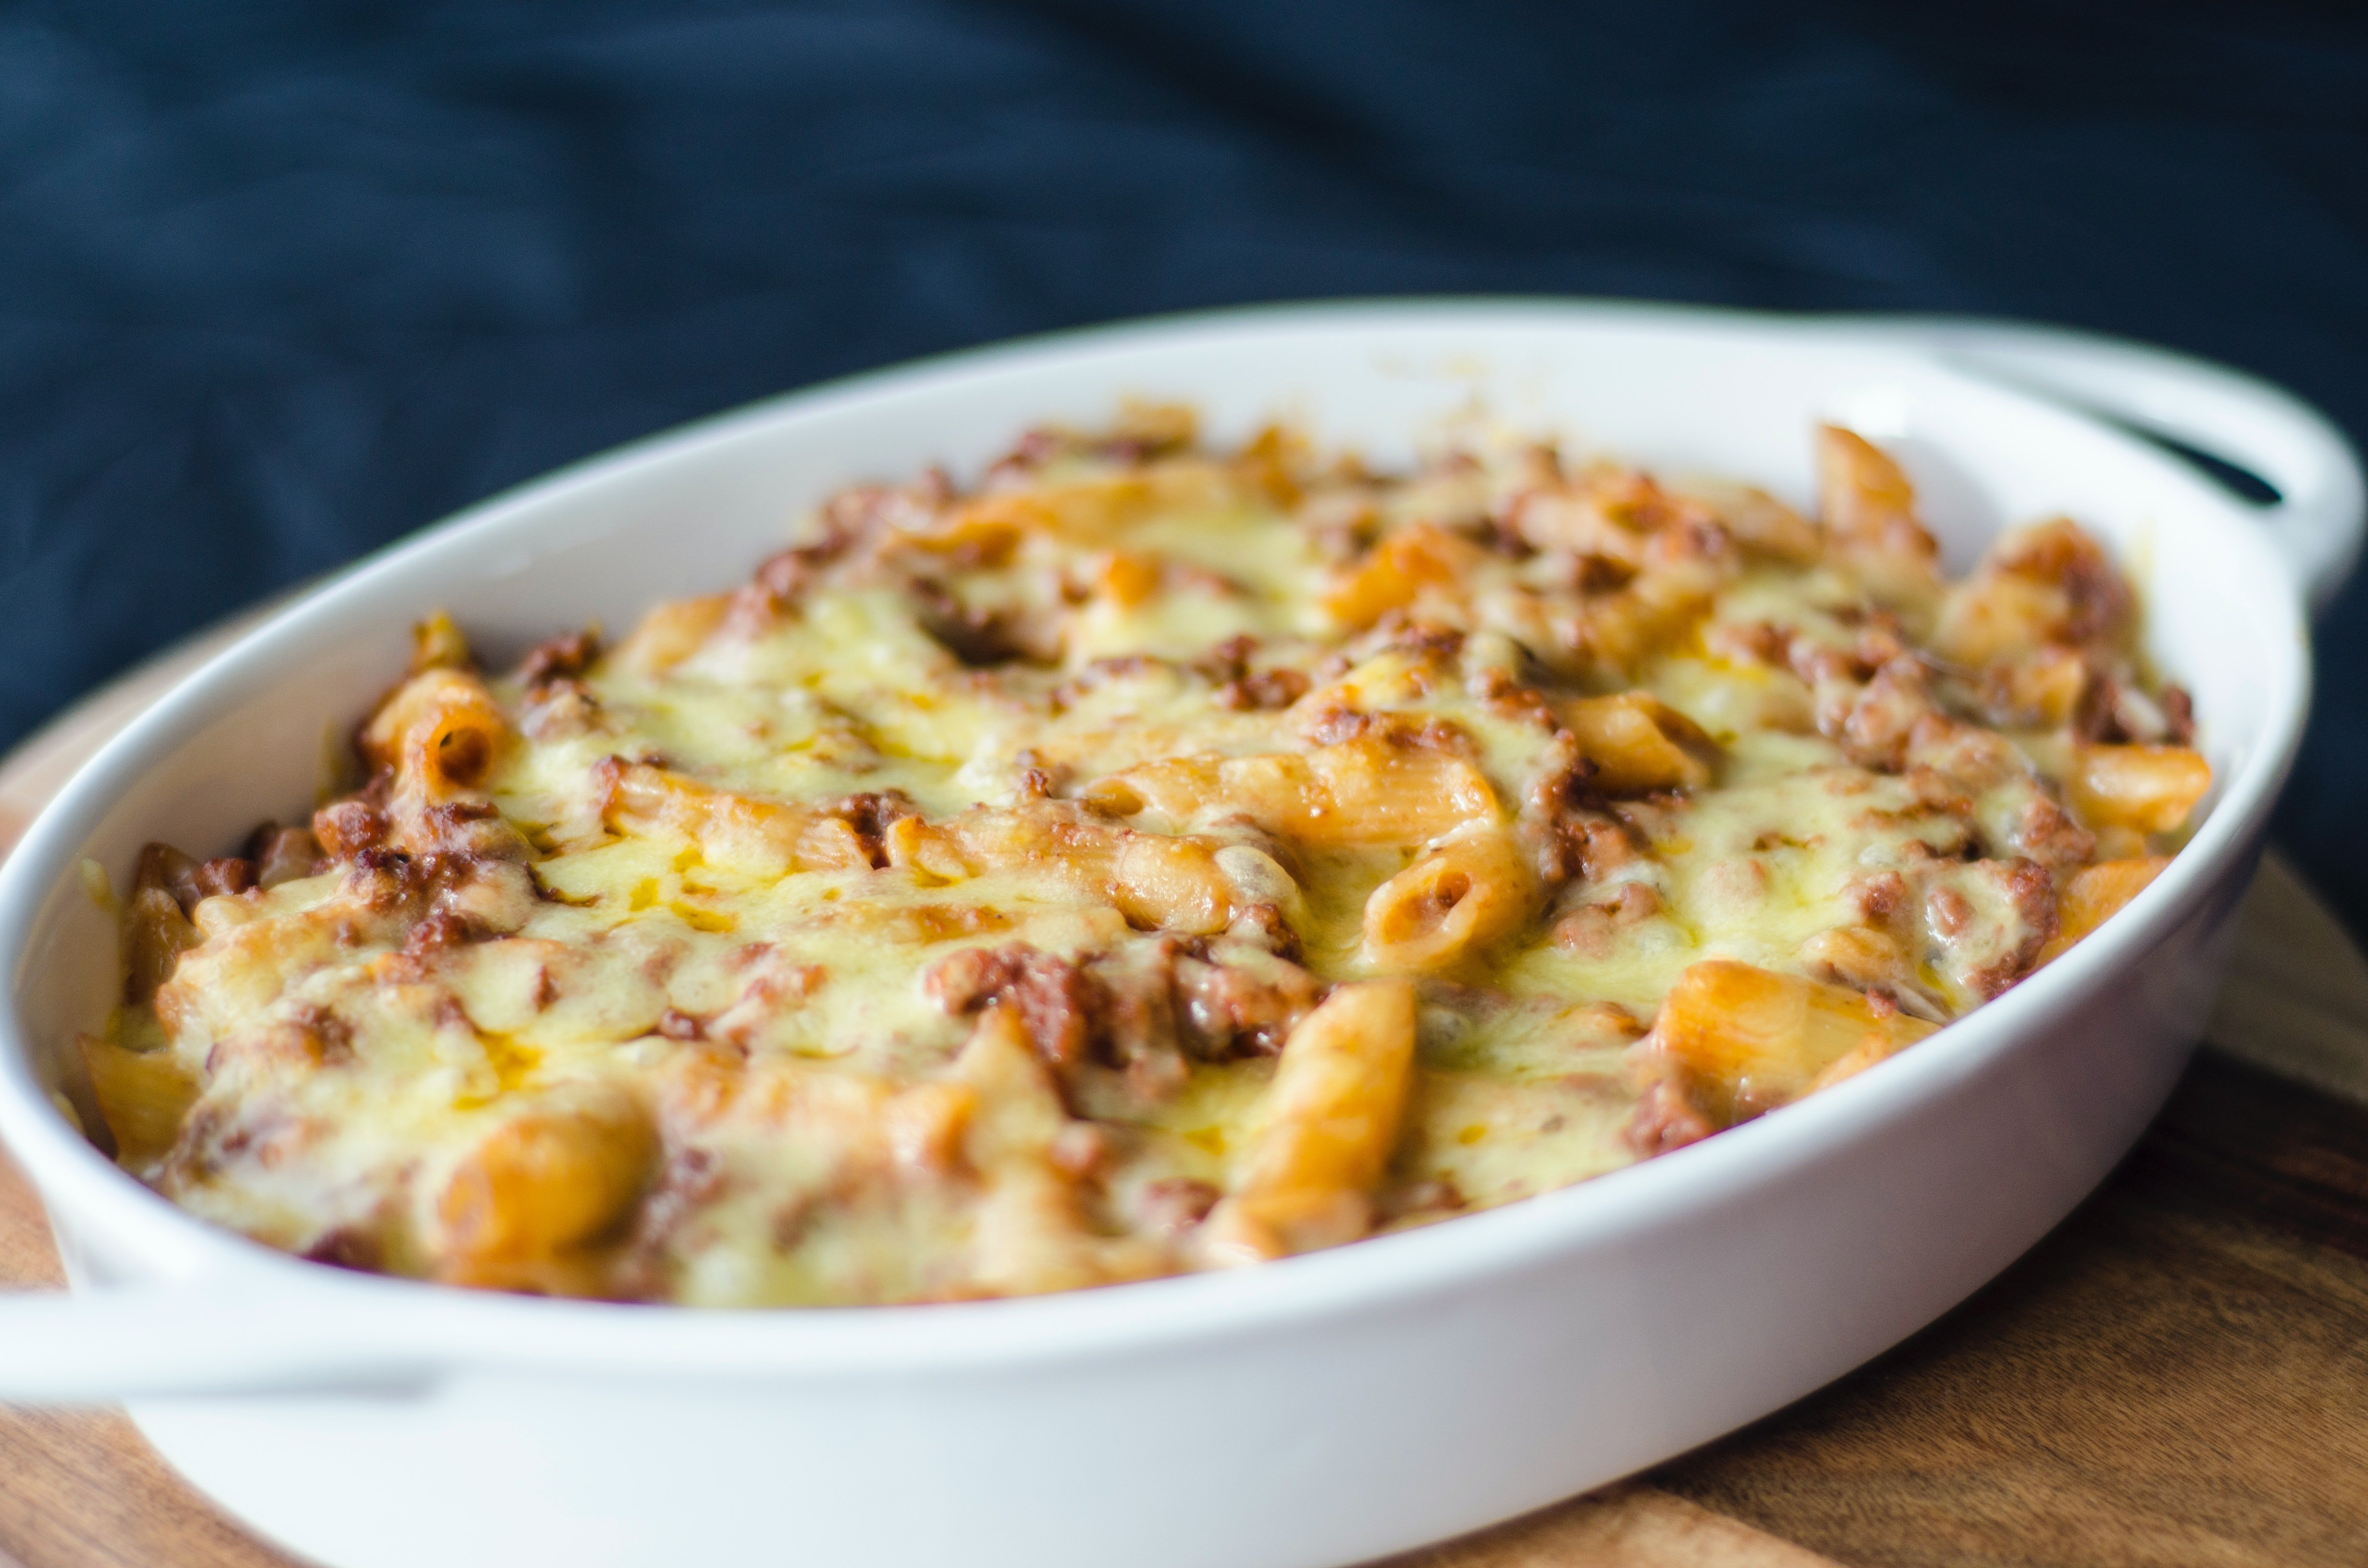 Pictured - a close-up photo of baked mac | Source: Pexels